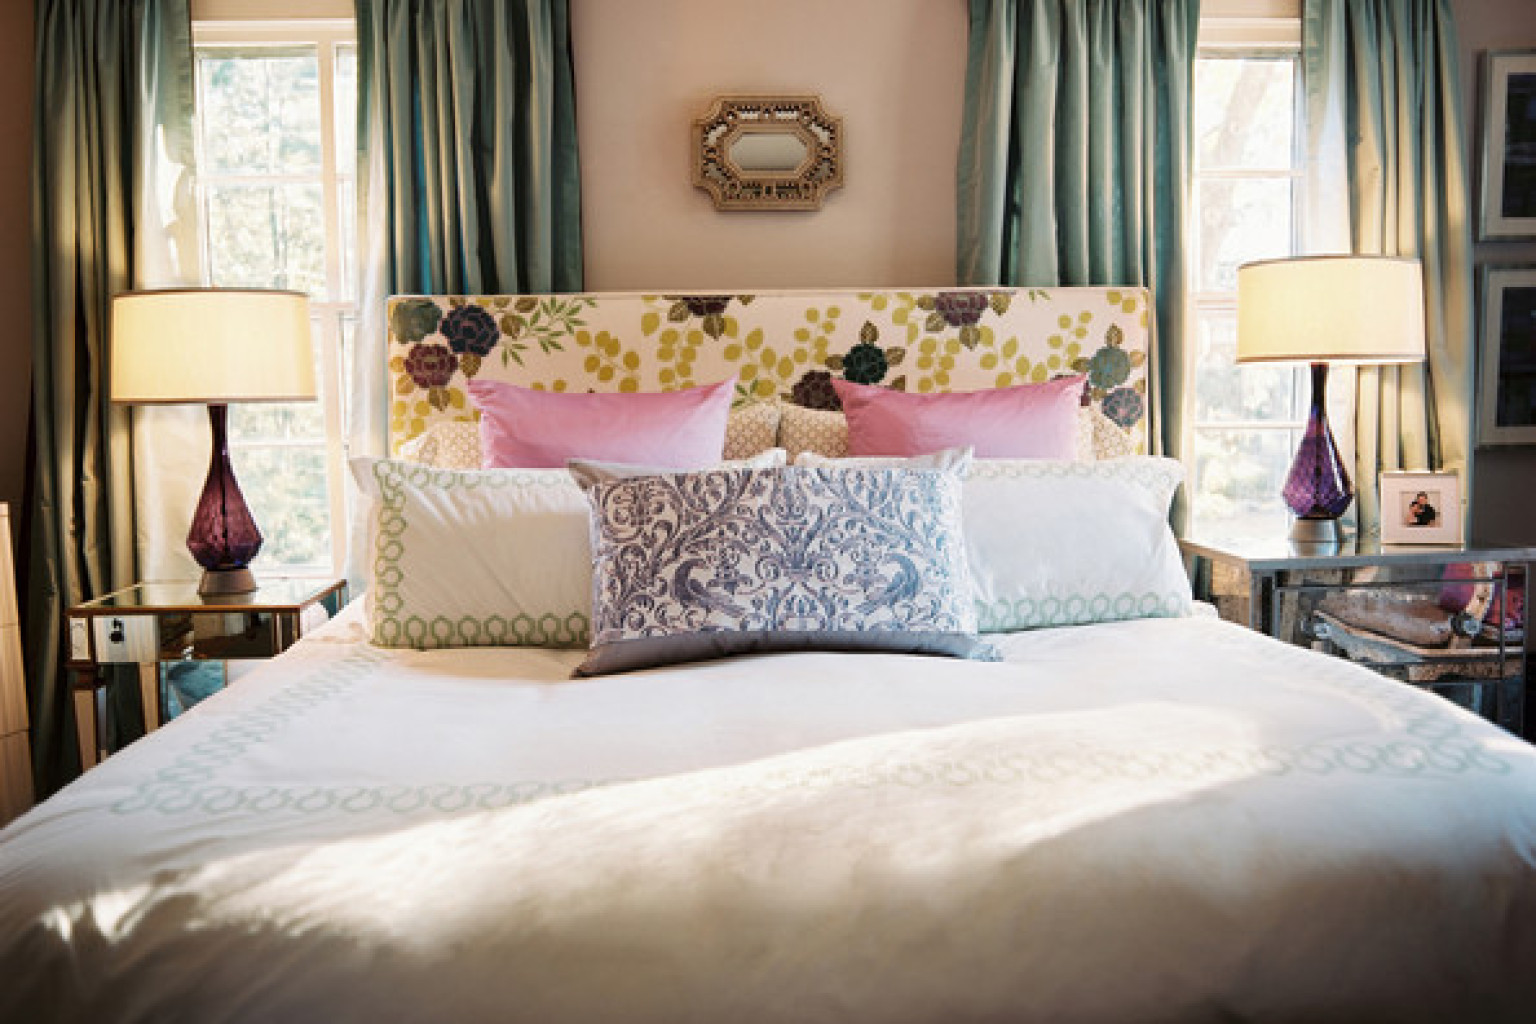 Of Romantic Bedrooms 8 Romantic Bedroom Ideas From Lonny That Will Totally Get You In